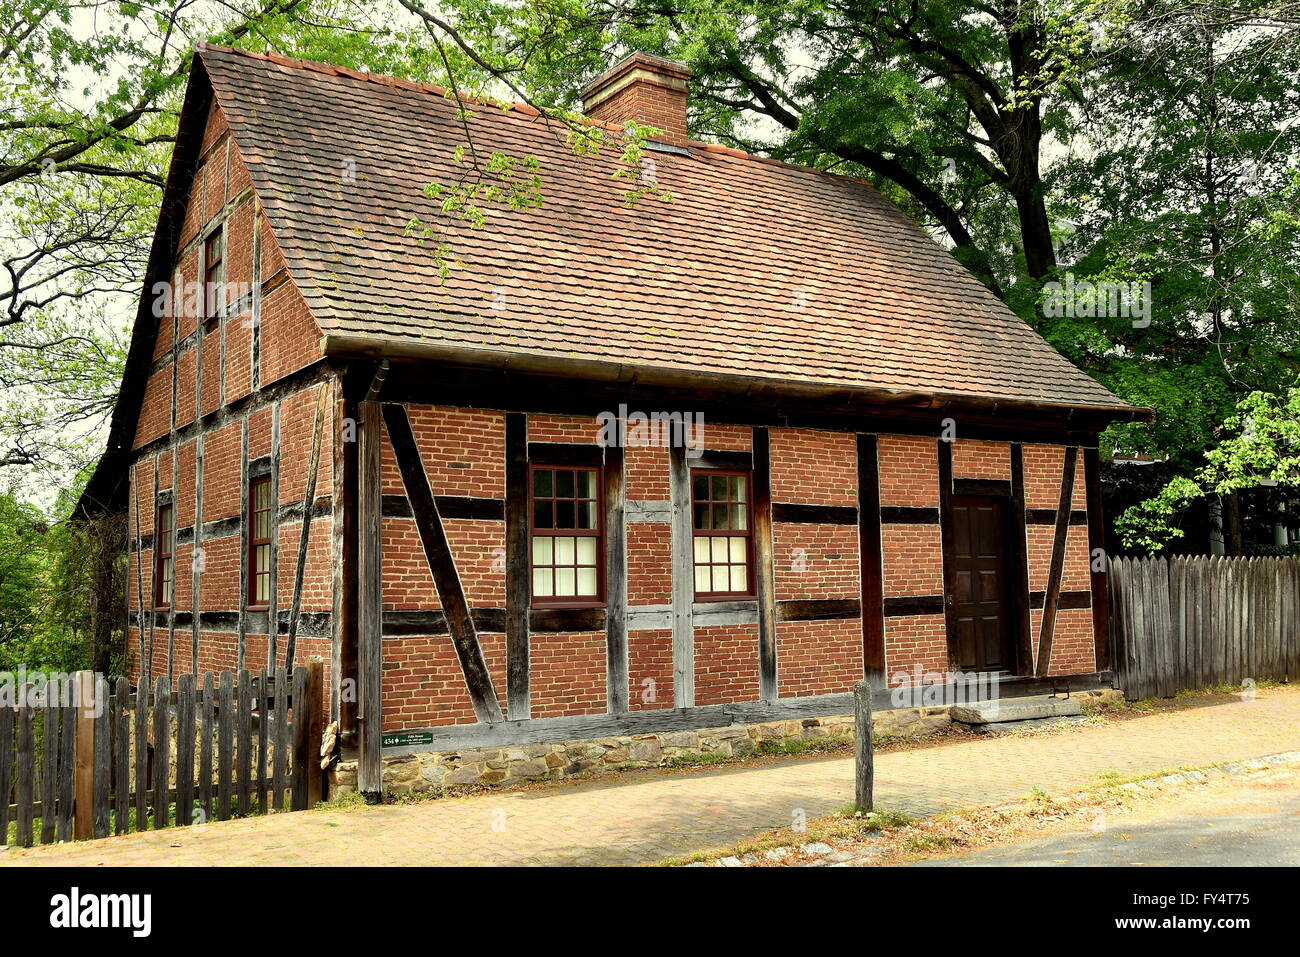 Old Salem, North Carolina:  Half-timbered and brick 1768 Moravian Fifth House with 1805 alterations on Main Street - Stock Image